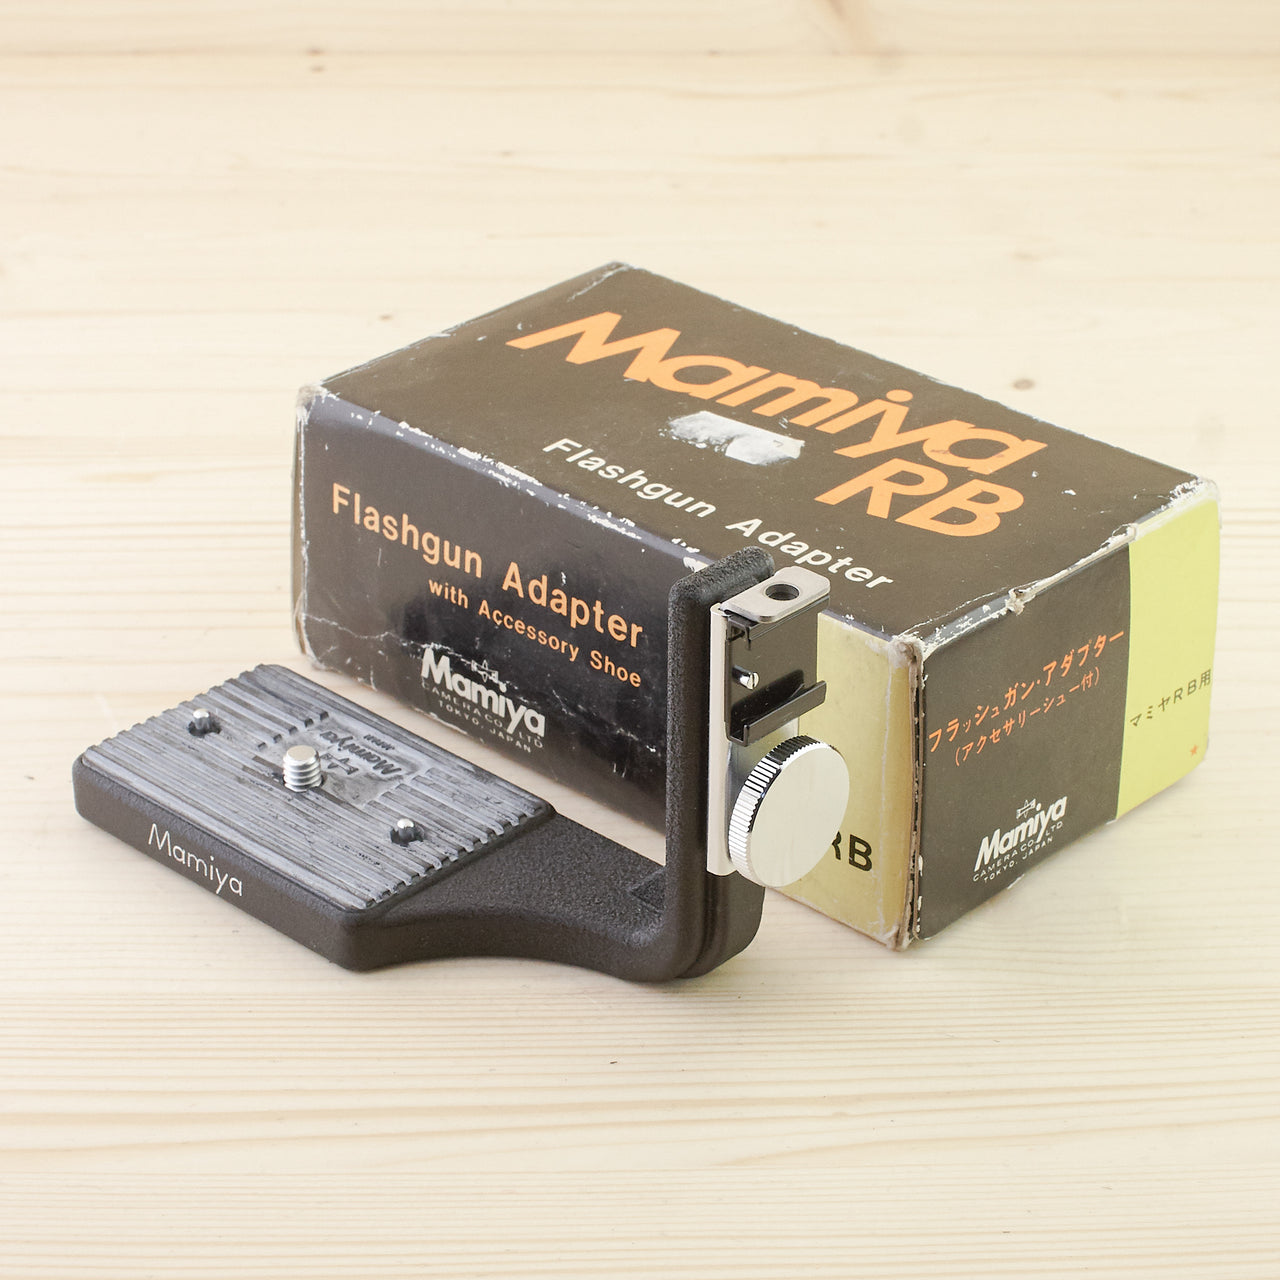 Mamiya RB Flashgun Adapter Exc Boxed - West Yorkshire Cameras